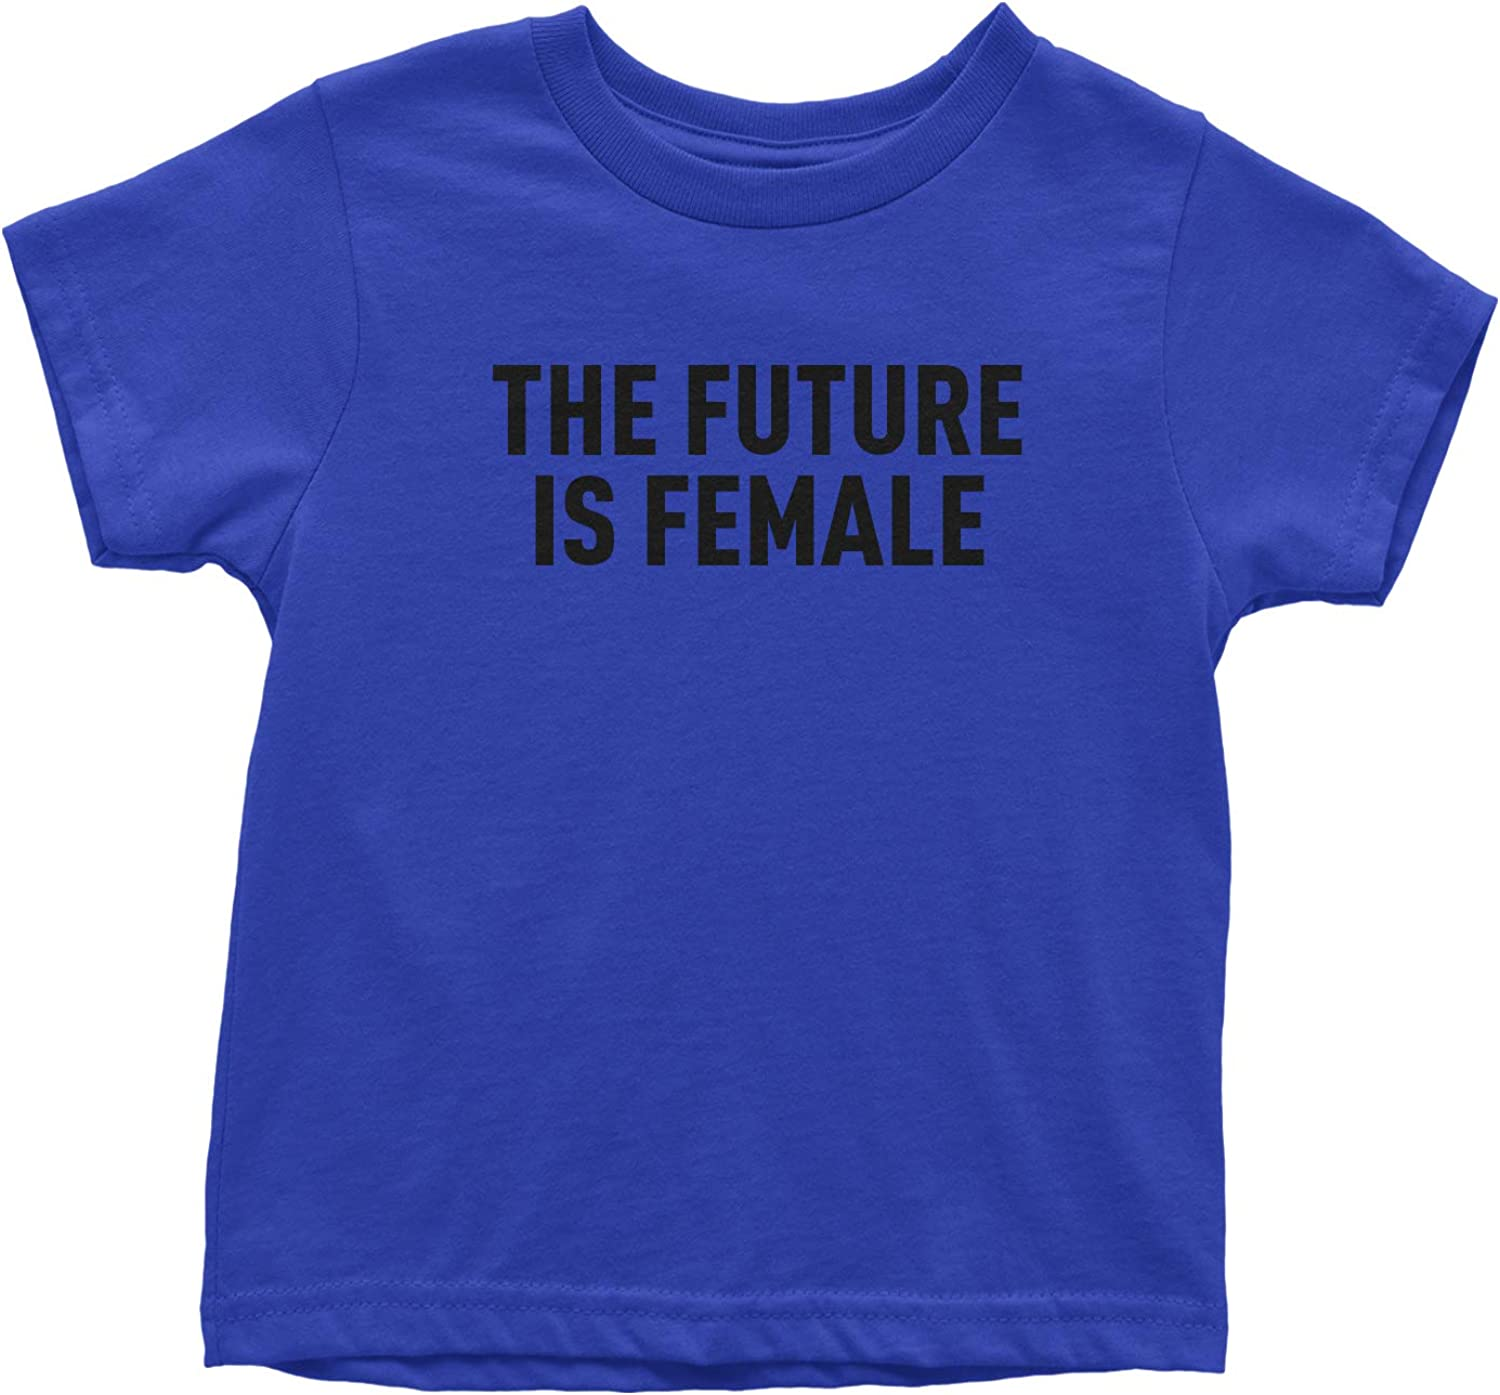 Black Print Toddler T-Shirt Expression Tees The Future is Female Feminism